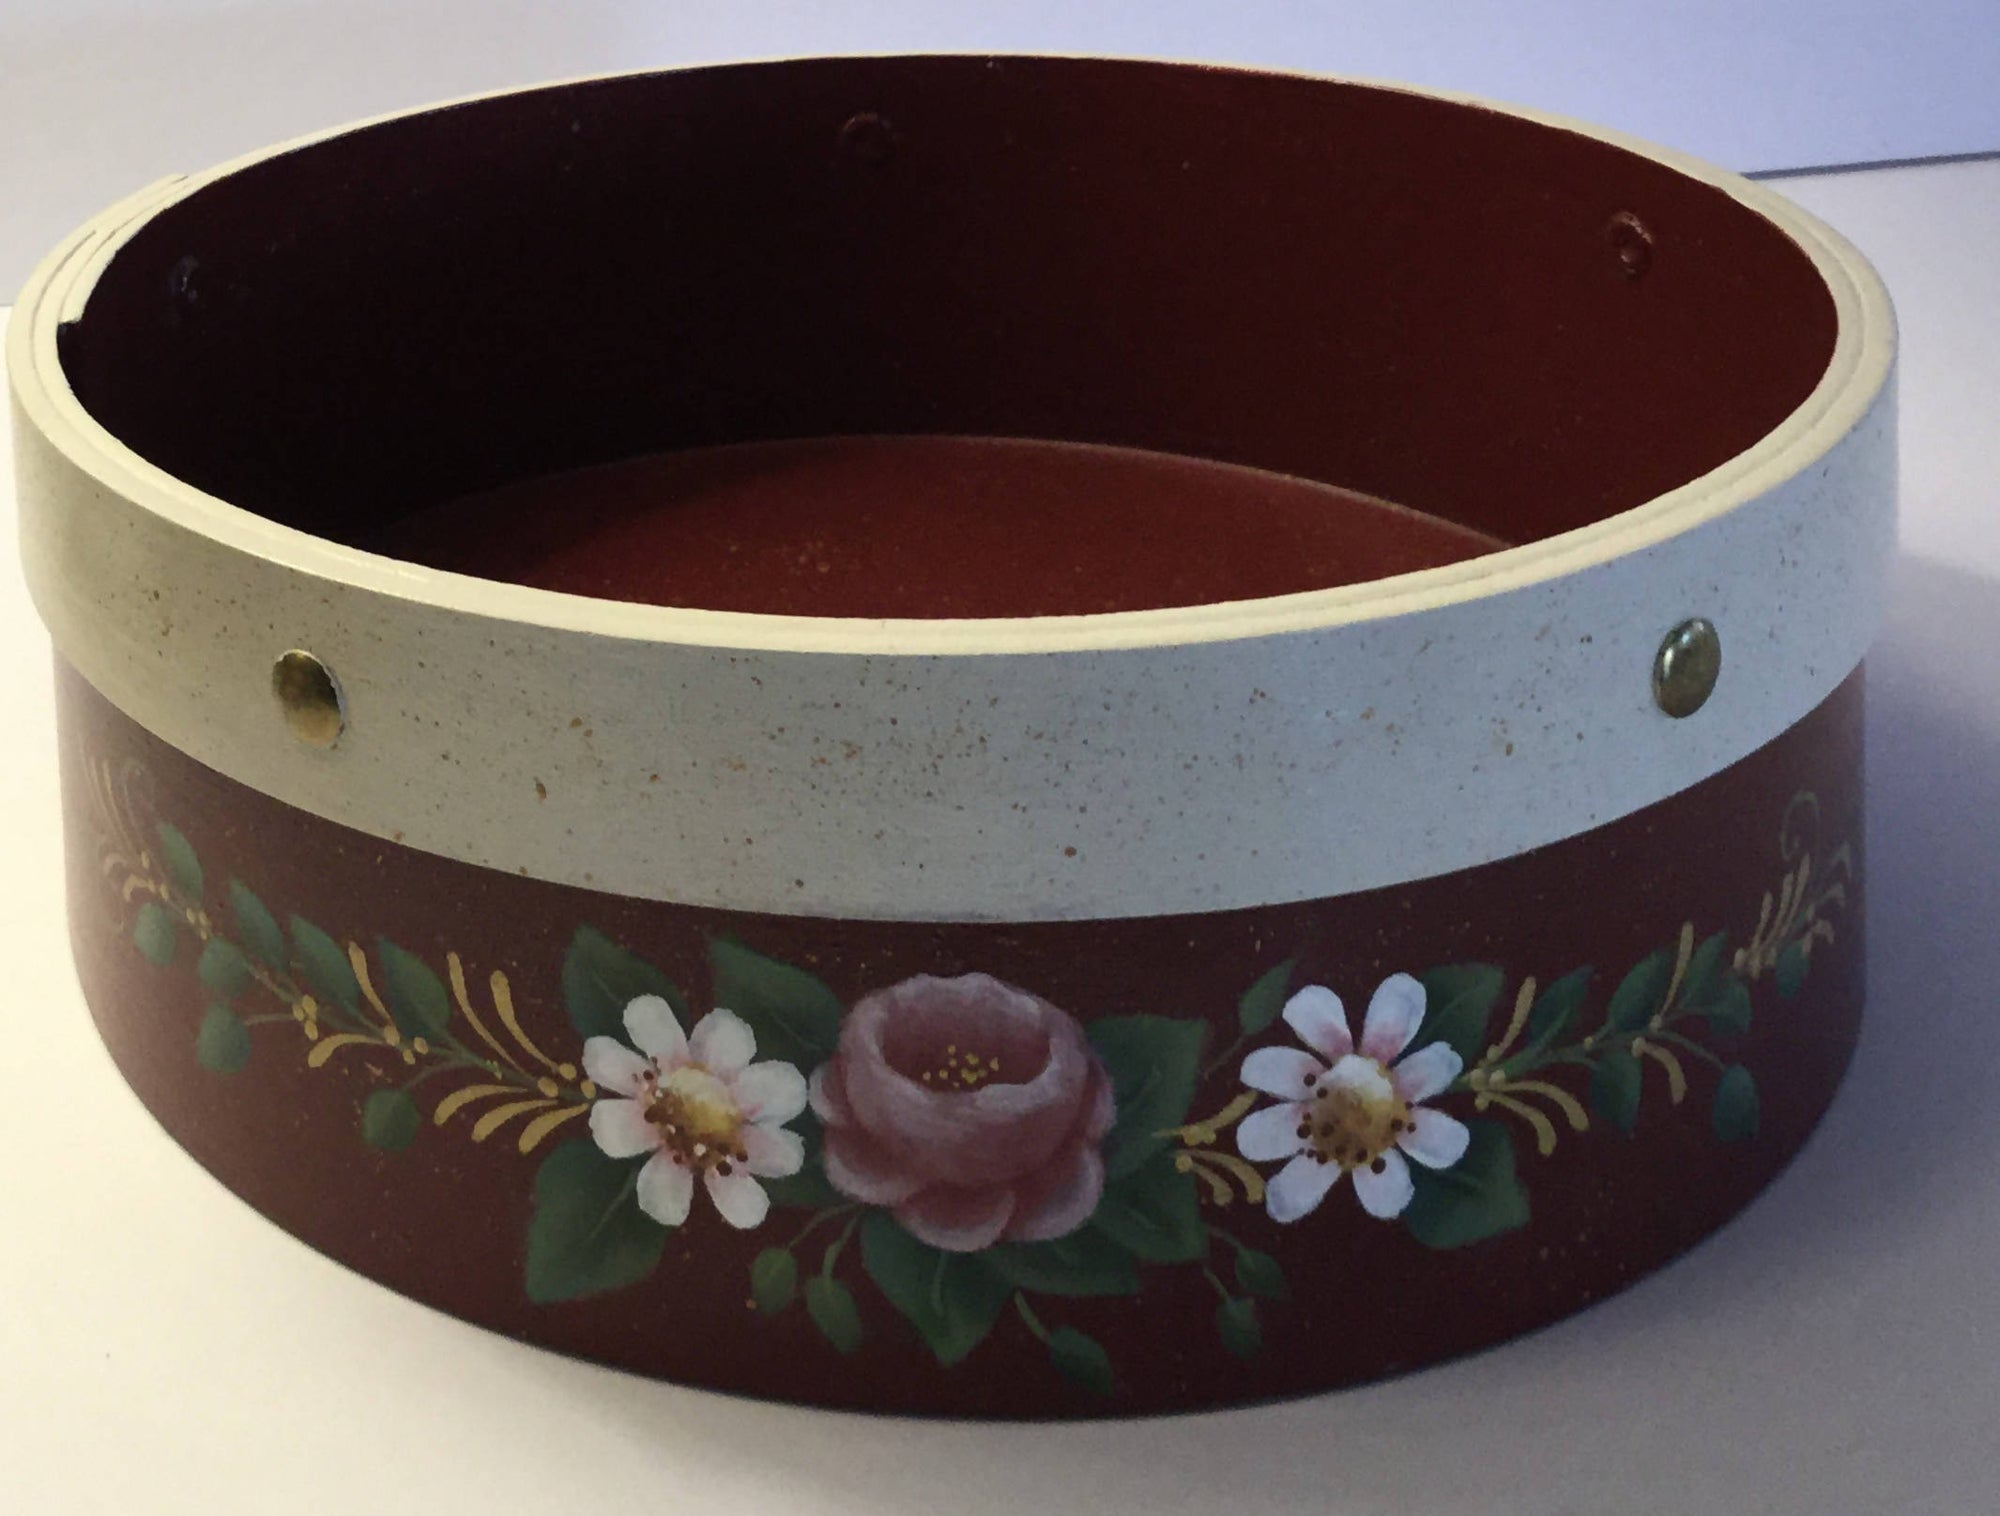 A Round Bentwood Box Painted in Red with pink Roses and Daisies on Both Sides